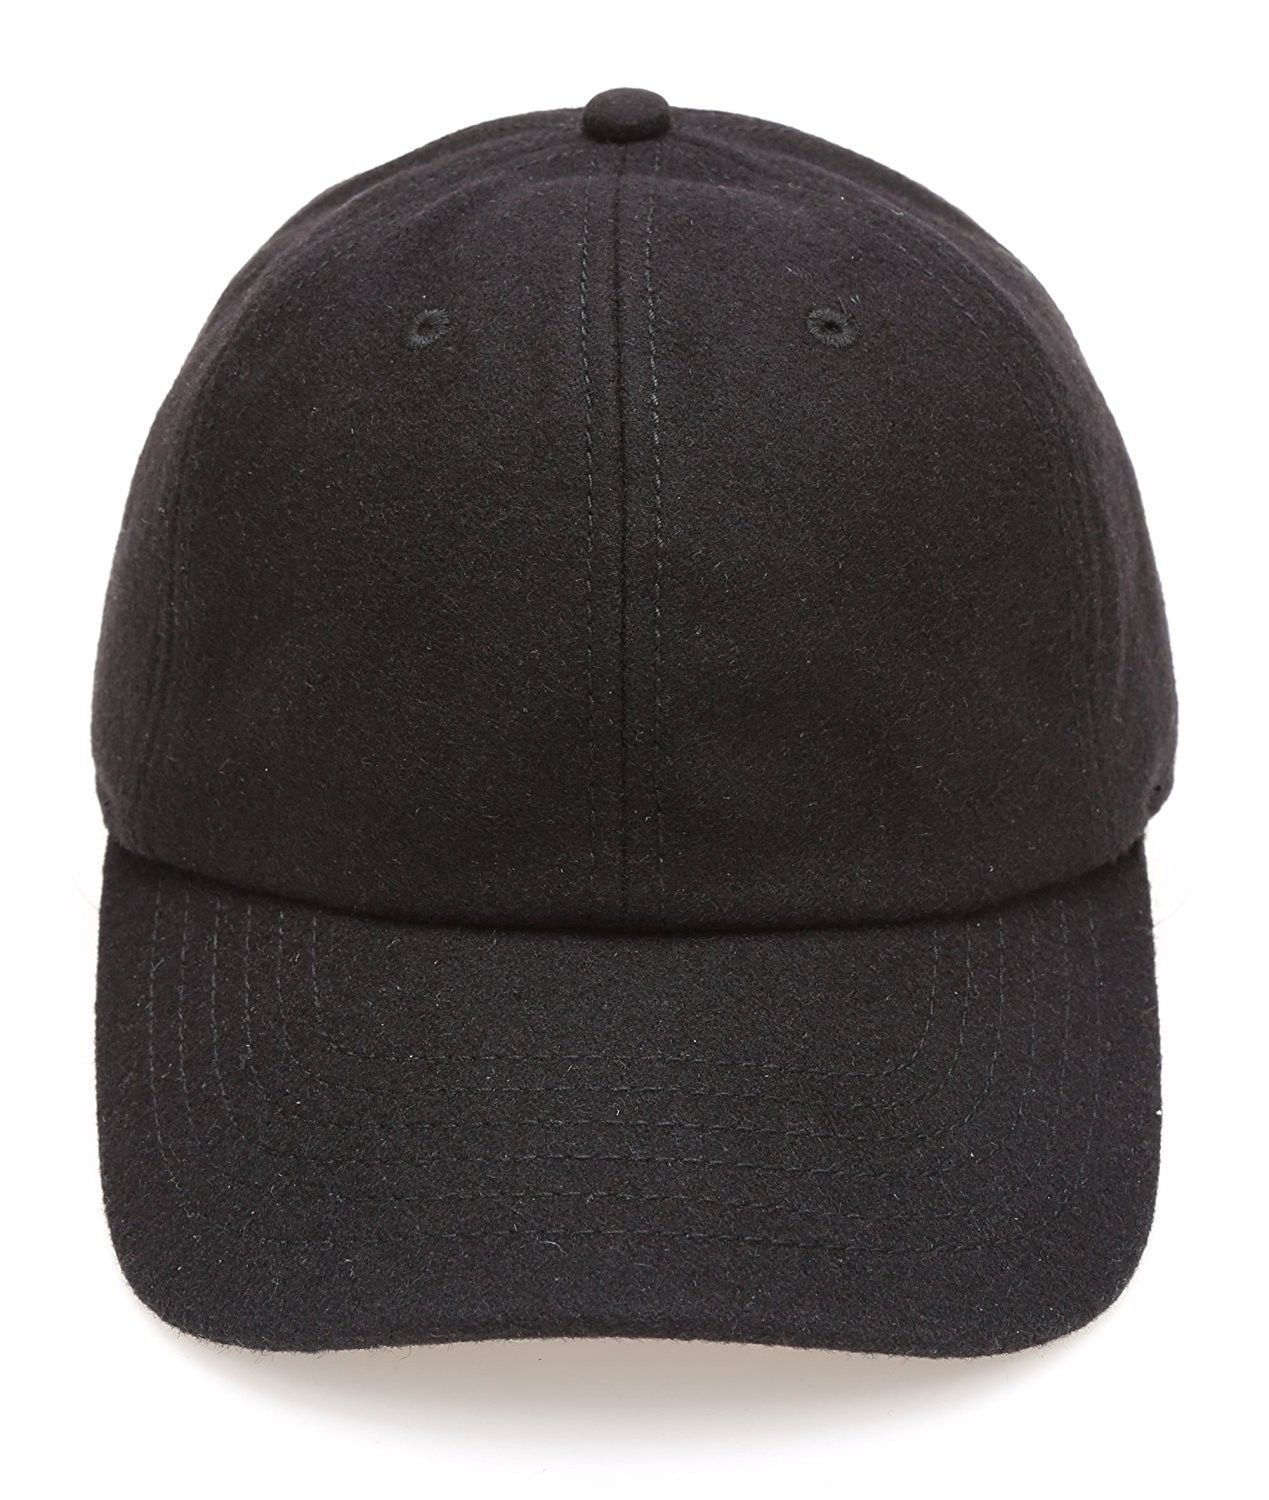 b839bee95 Men's Wool Blend Baseball Cap With Adjustable Size Strap - Black ...